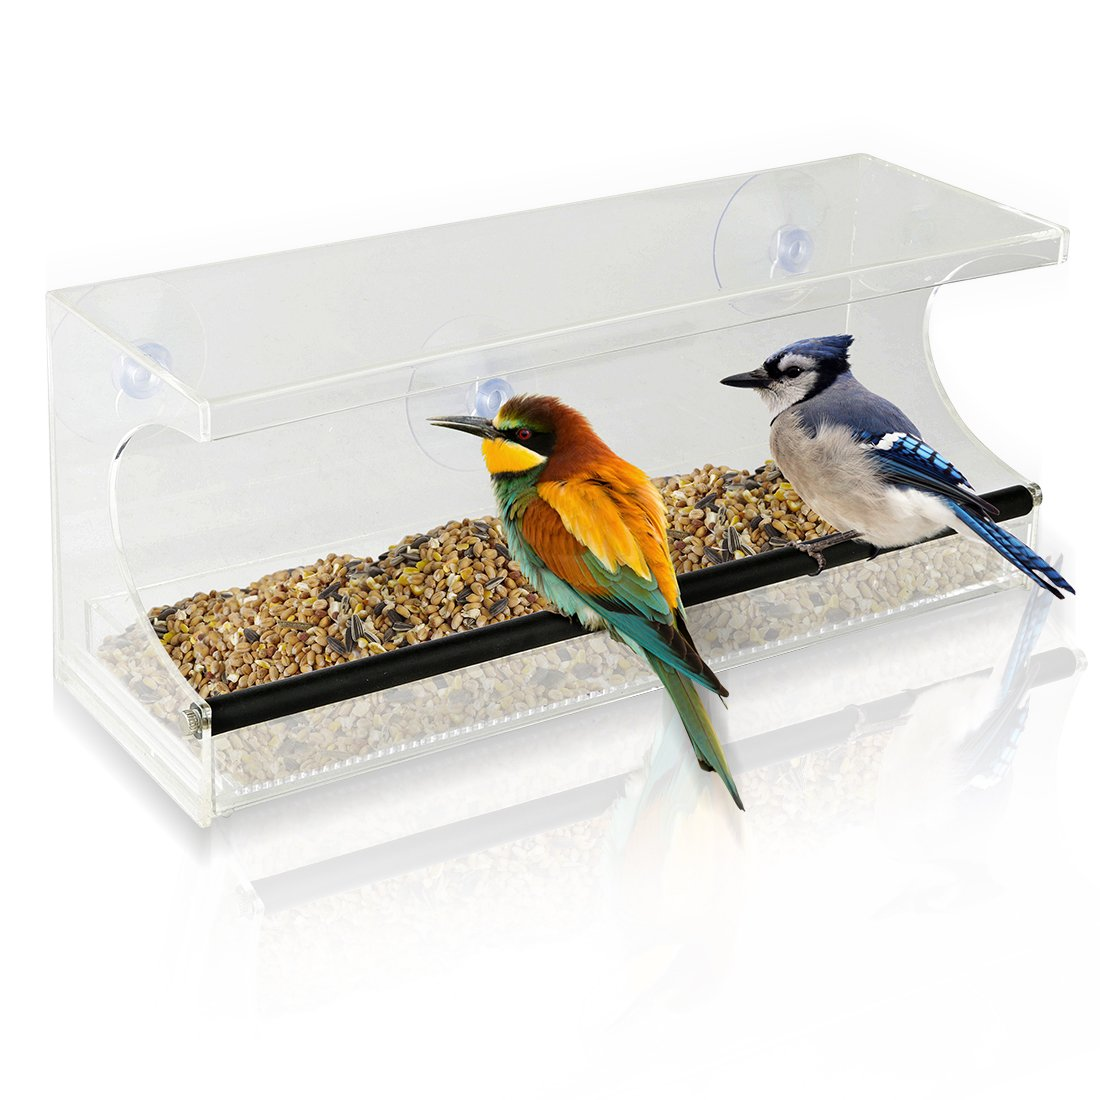 Window Bird Feeder   See Through Acrylic   Clear, Removable Slide Out Tray    Drainage Holes Keep Bird Seed Fresh   3 Suction Cups For Easy Mounting ...